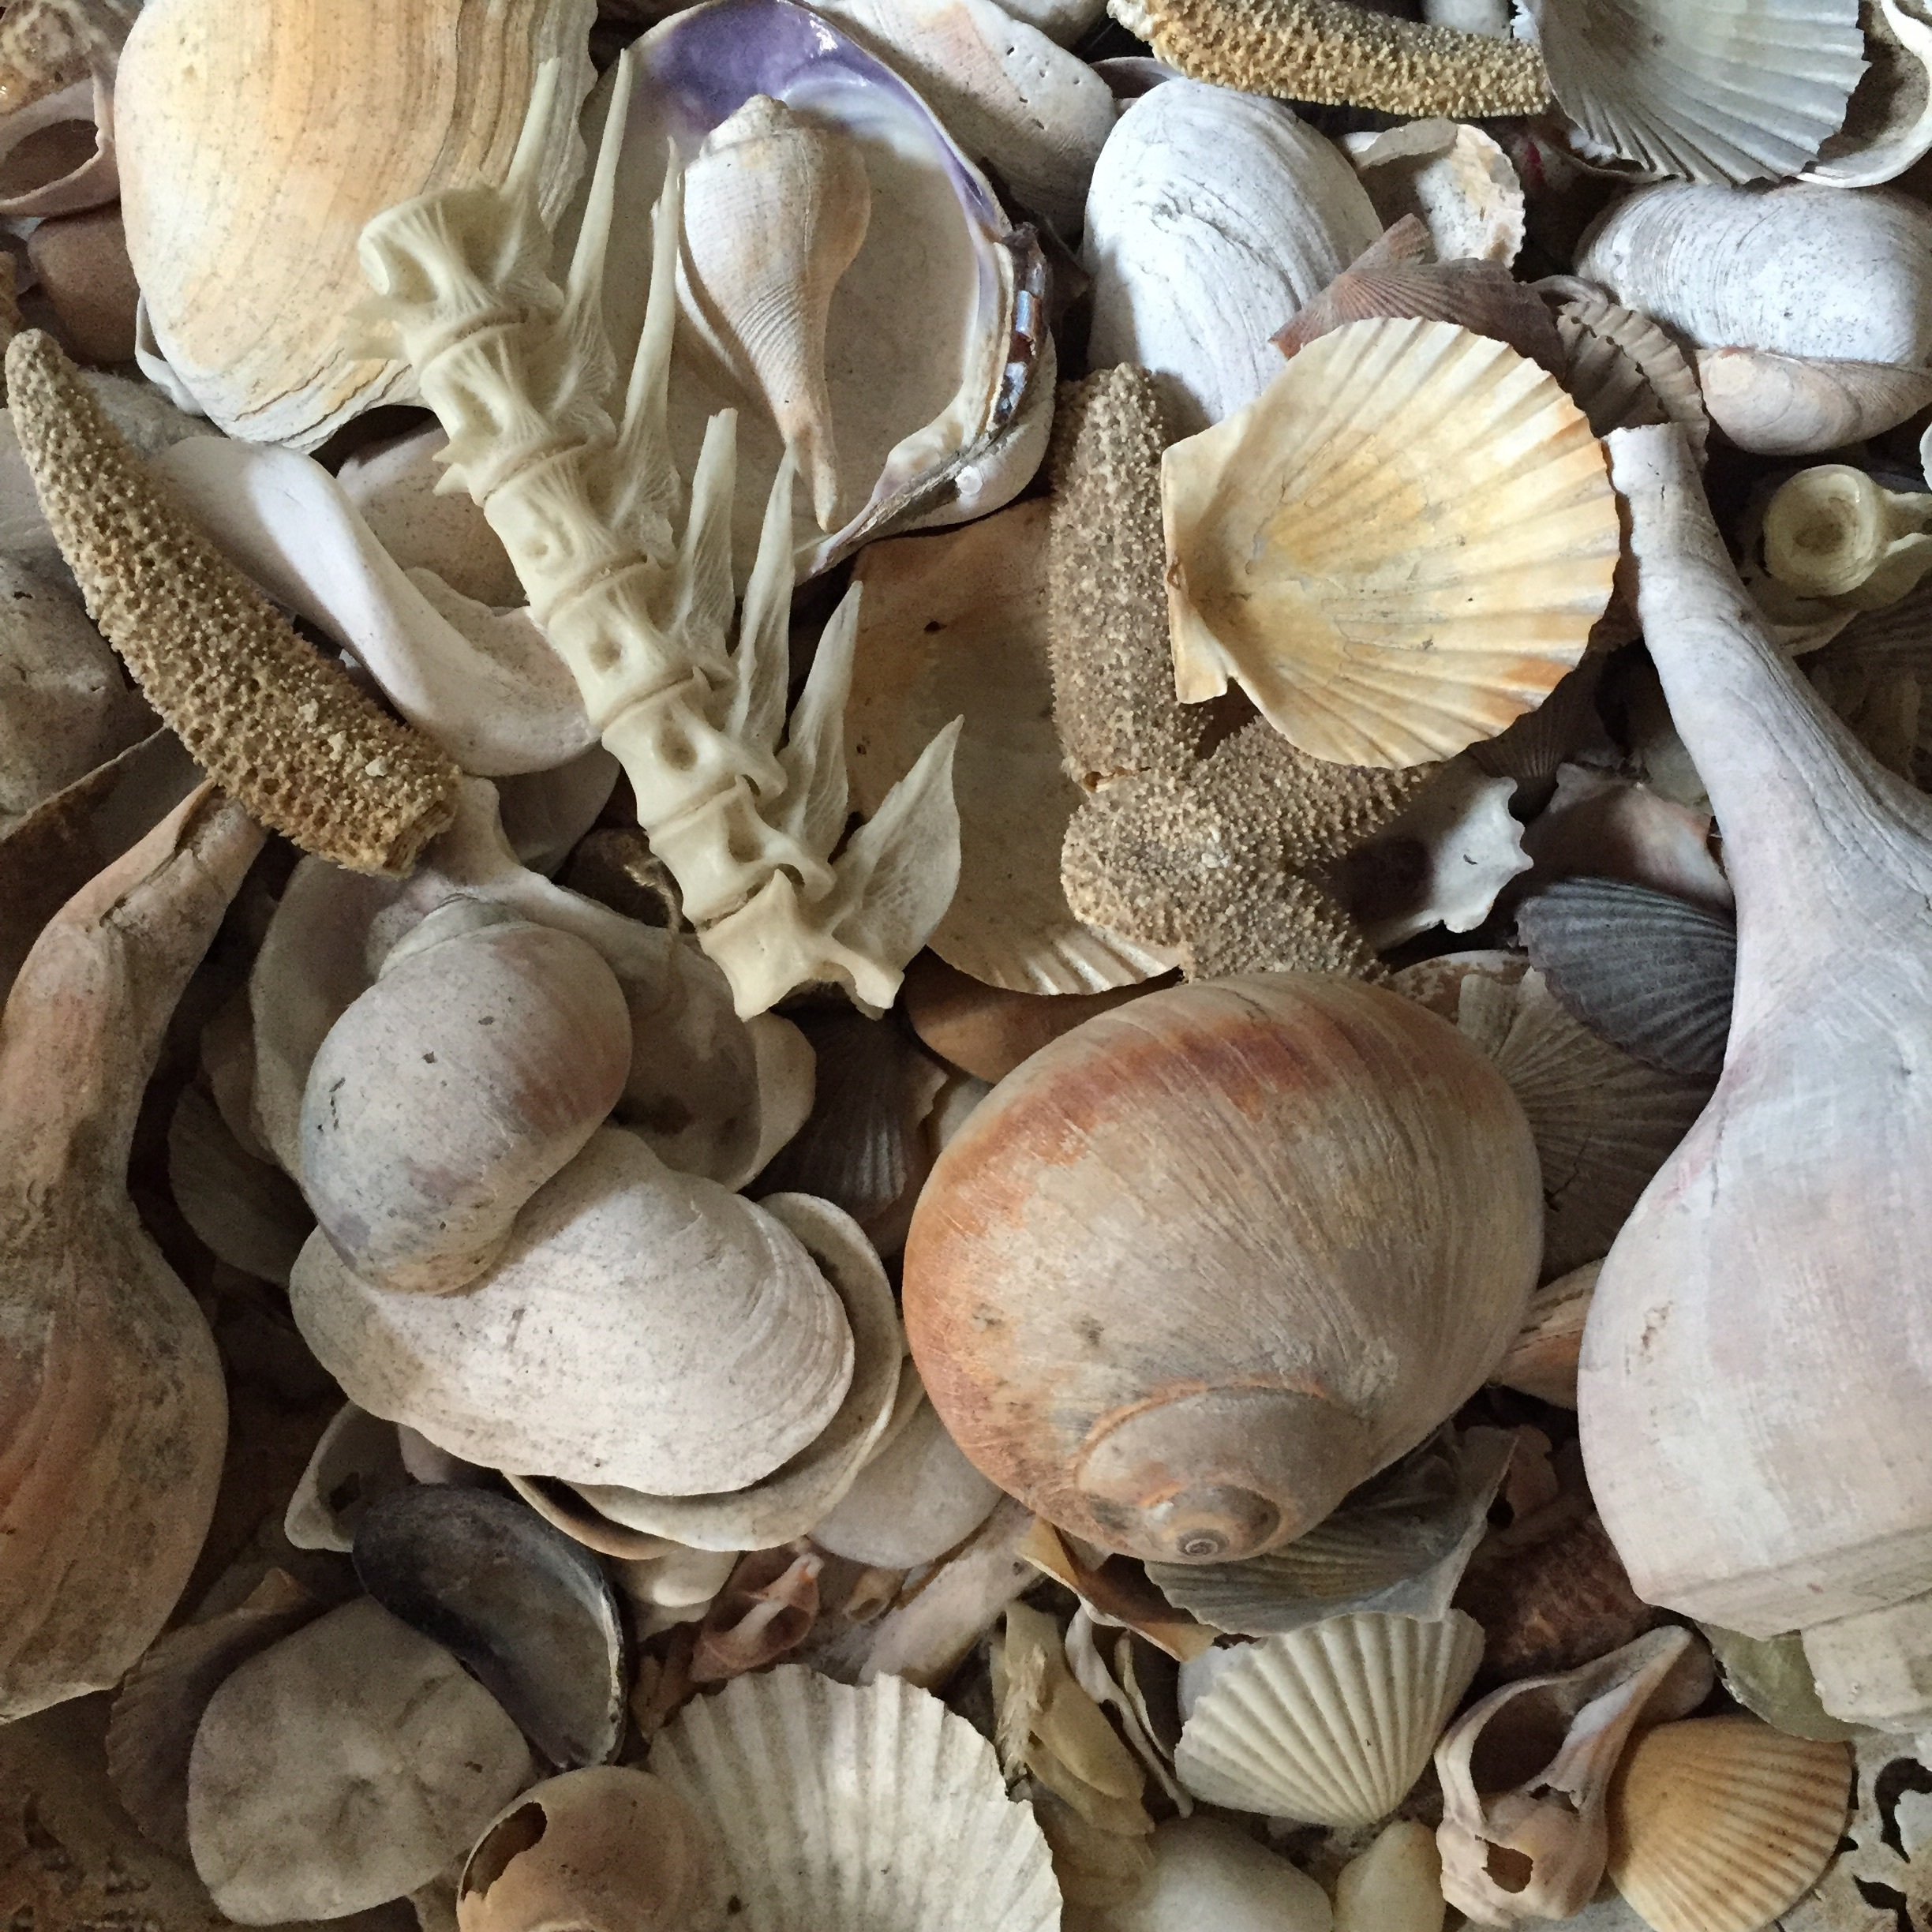 A collection of seashells and bones from her beach...